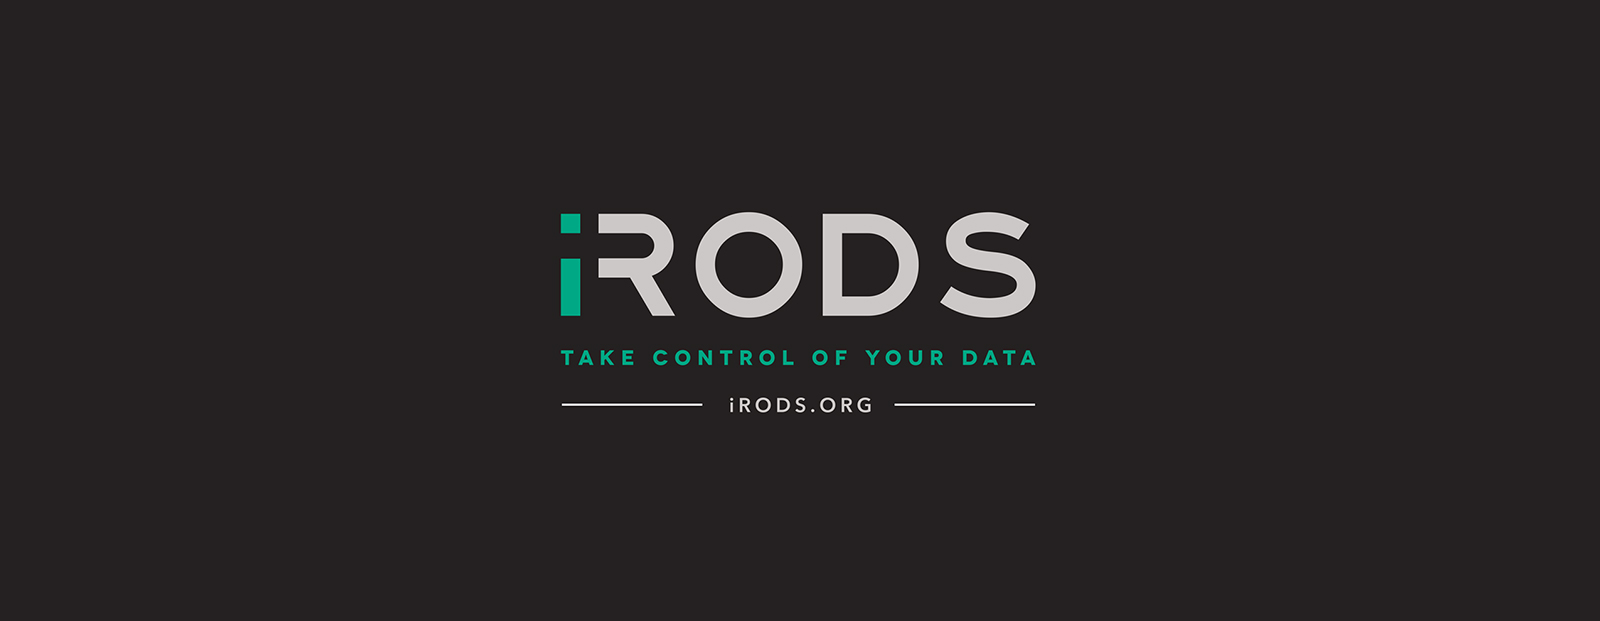 Featured Image for iRODS Chief Technologist named interim head of iRODS Consortium